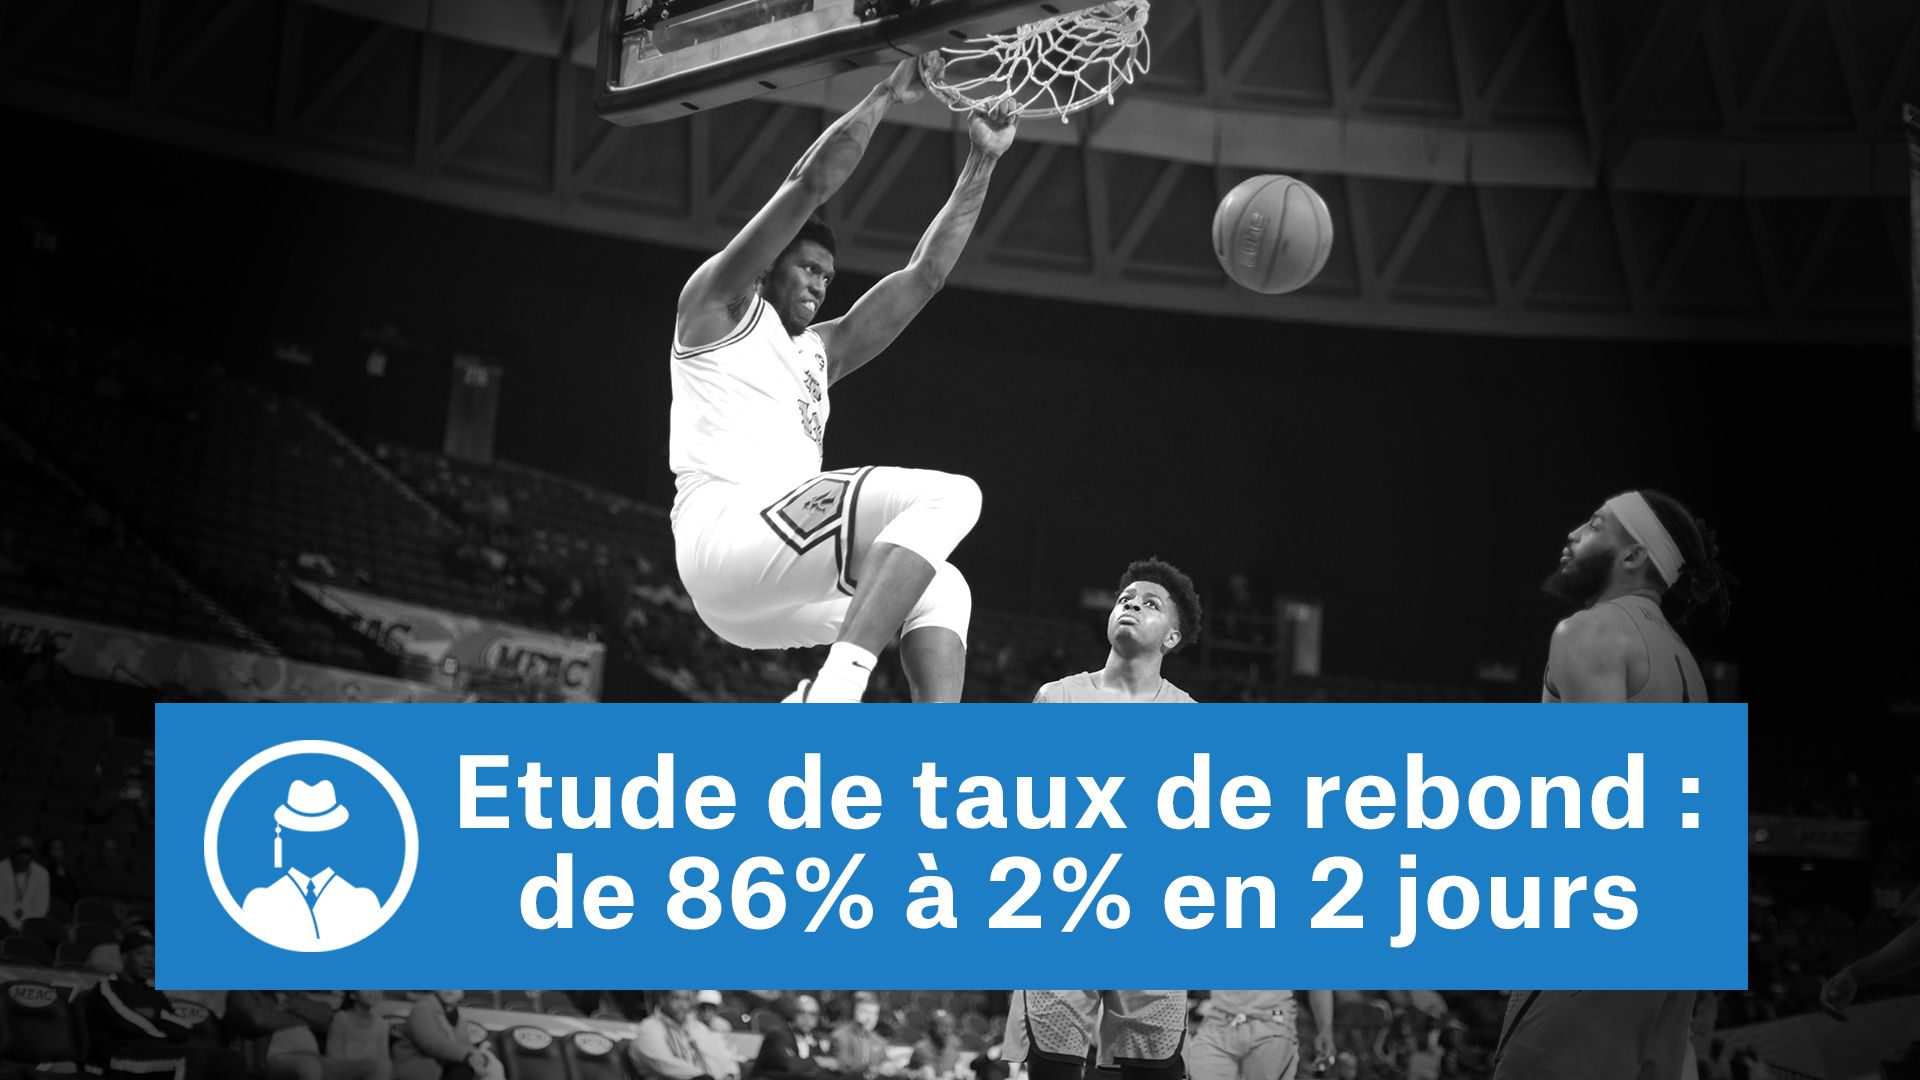 Etude de taux de rebond : de 86% à 2% en 2 jours #GrowthHacking #WebMarketing #FormationGrowthHacking #CentreDeFormationFrance #TunnelAARRR #AARRR #SocialMedia #CommunityManagement #SEO #MarketingDigital #SiteWeb #TauxDeRebond #BounceRate